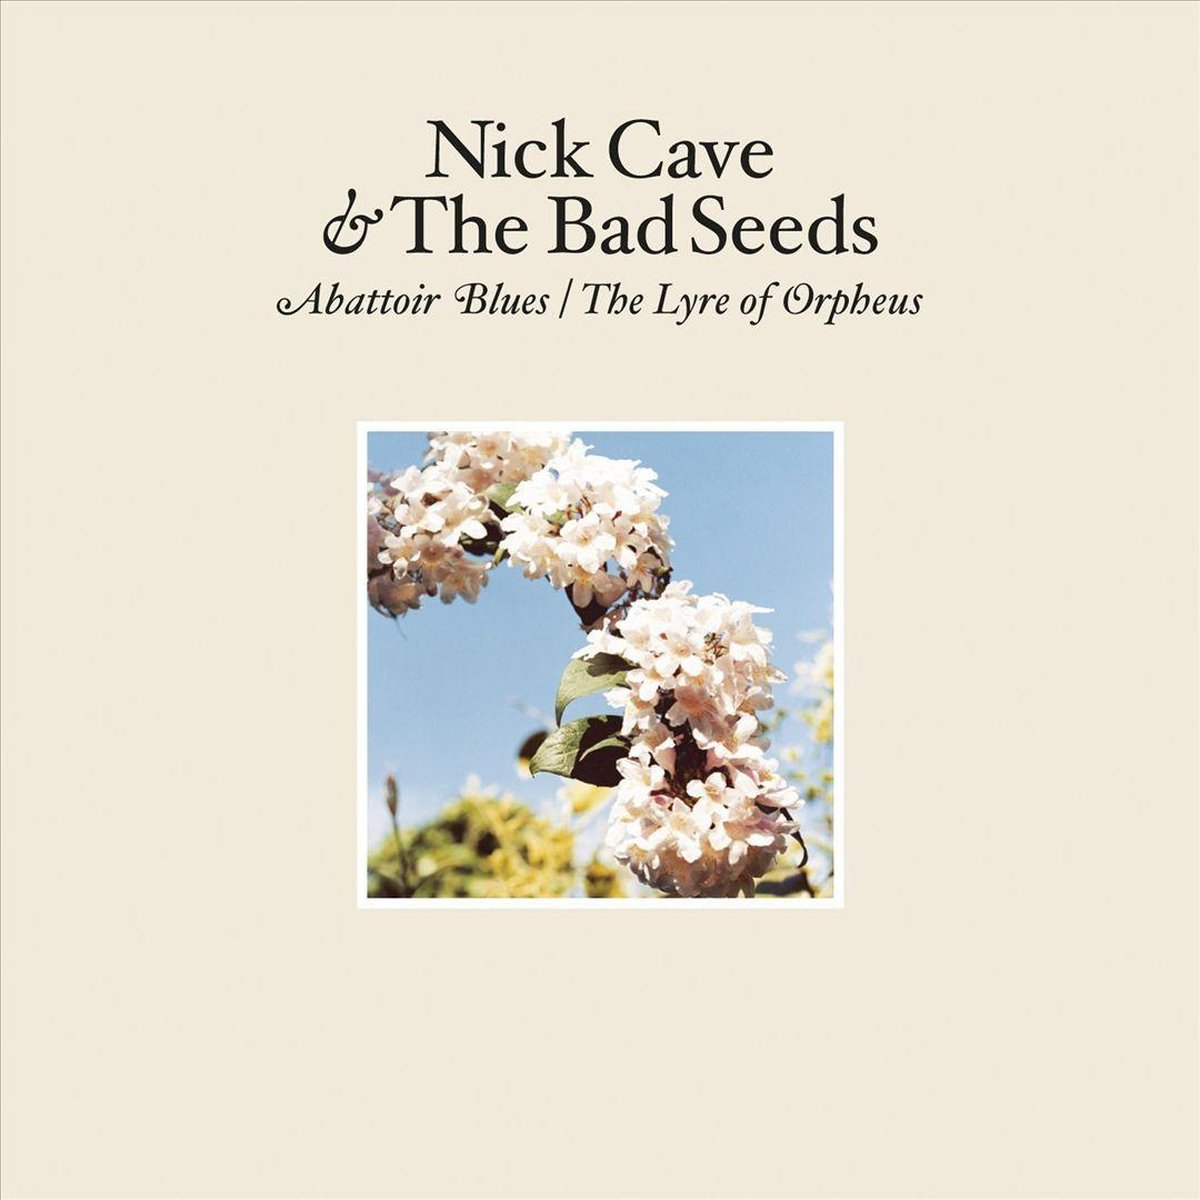 Abattoir Blues / Lyre Of Orpheus (2Cd+Dvd) - Nick Cave & The Bad Seeds